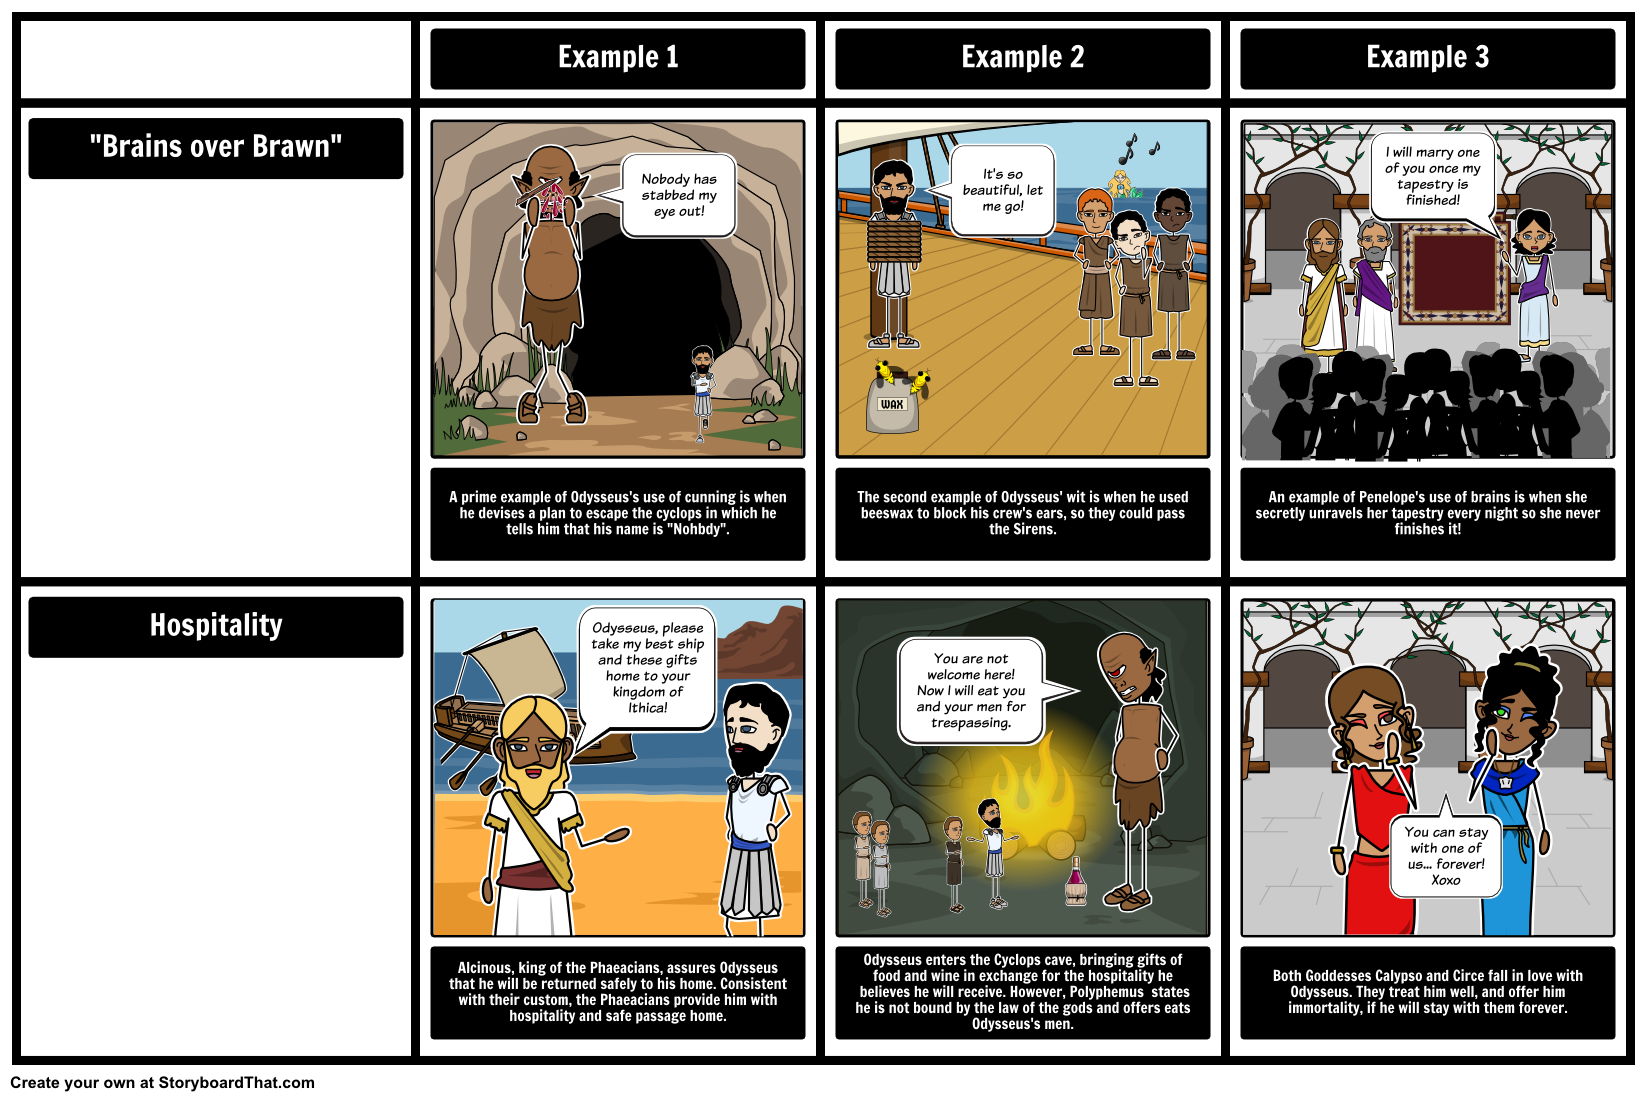 Homer odyssey themes analyze the themes of the odyssey and includes storyboards to define themes symbols motifs in literature with examples meaning symbolism definitions in storyboards biocorpaavc Images